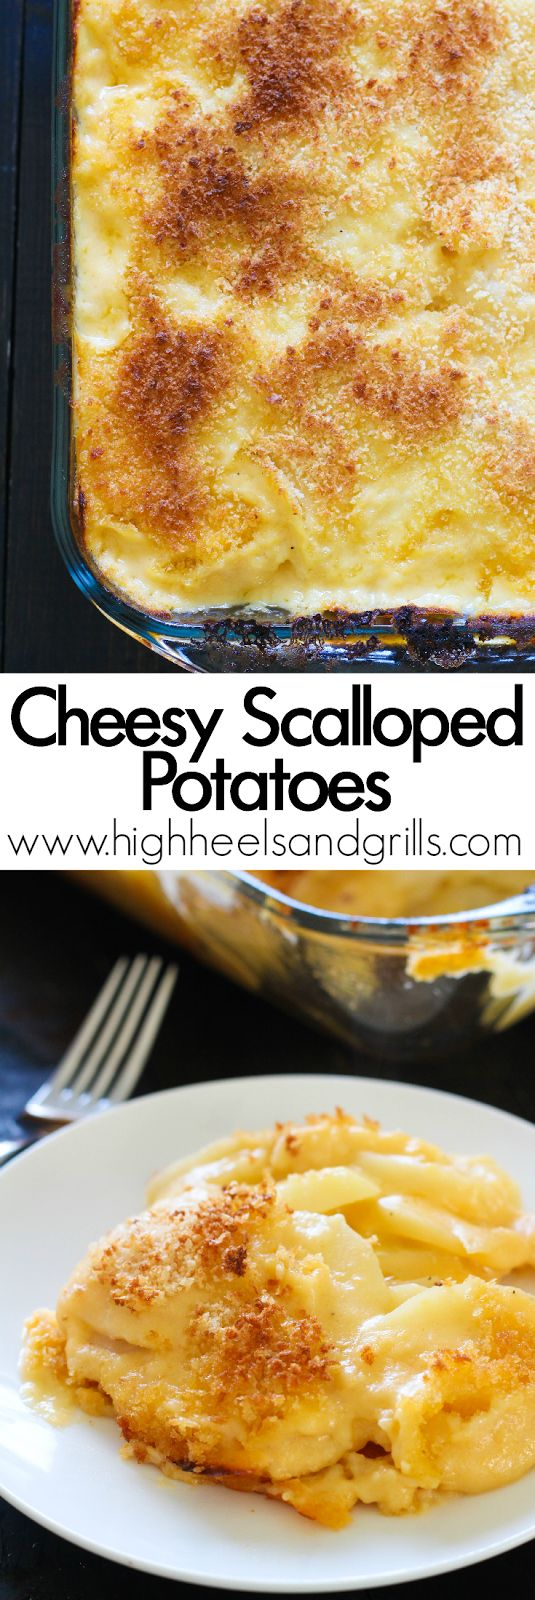 Cheesy Scalloped Potatoes - These are a great and easy side dish for any dinner!